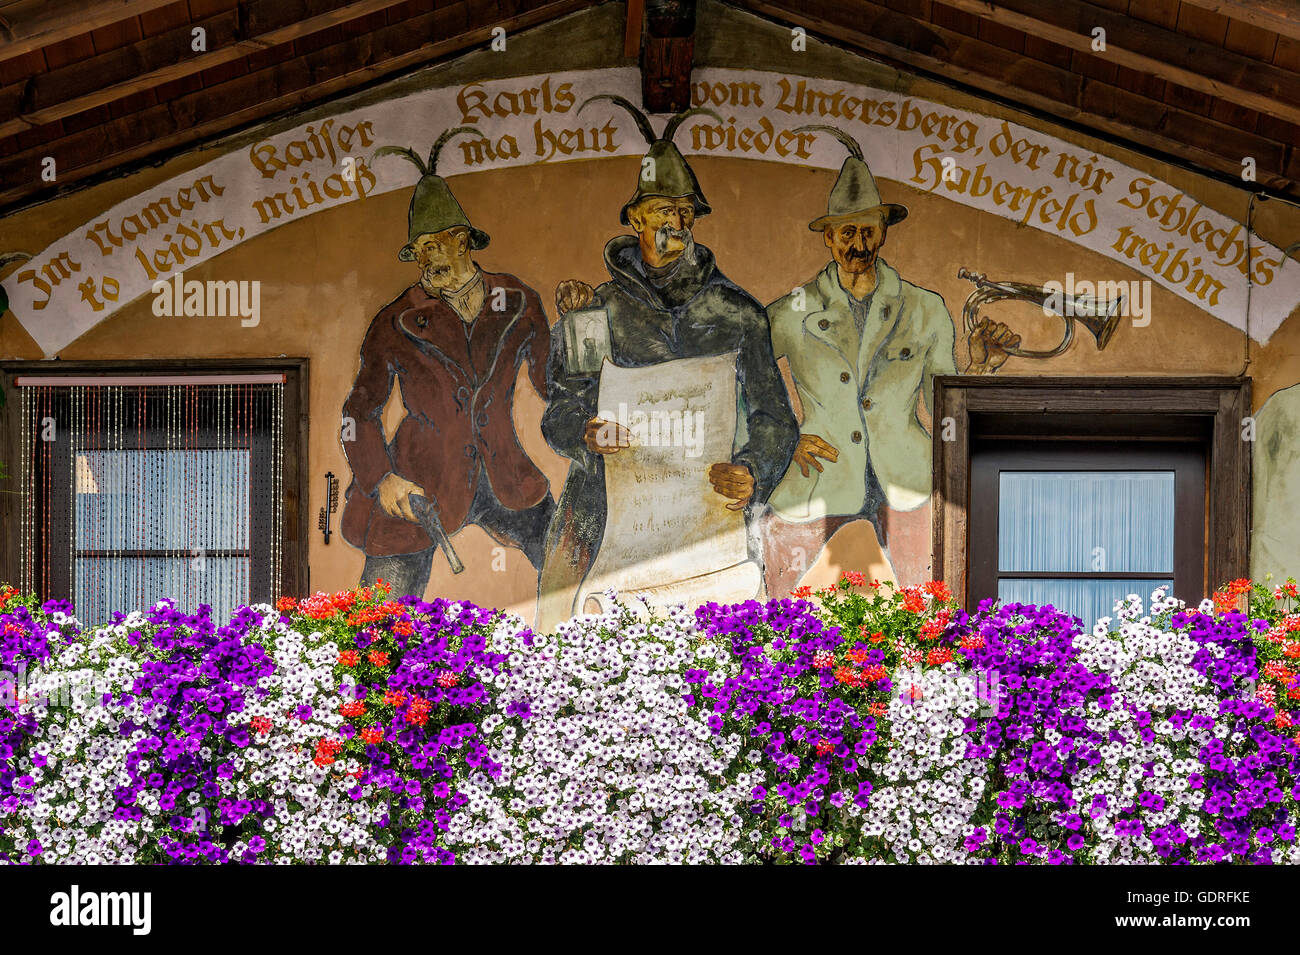 Miesbacher Holzhaus Farmhouse Facade Detail Floral Decoration Stockfotos Farmhouse